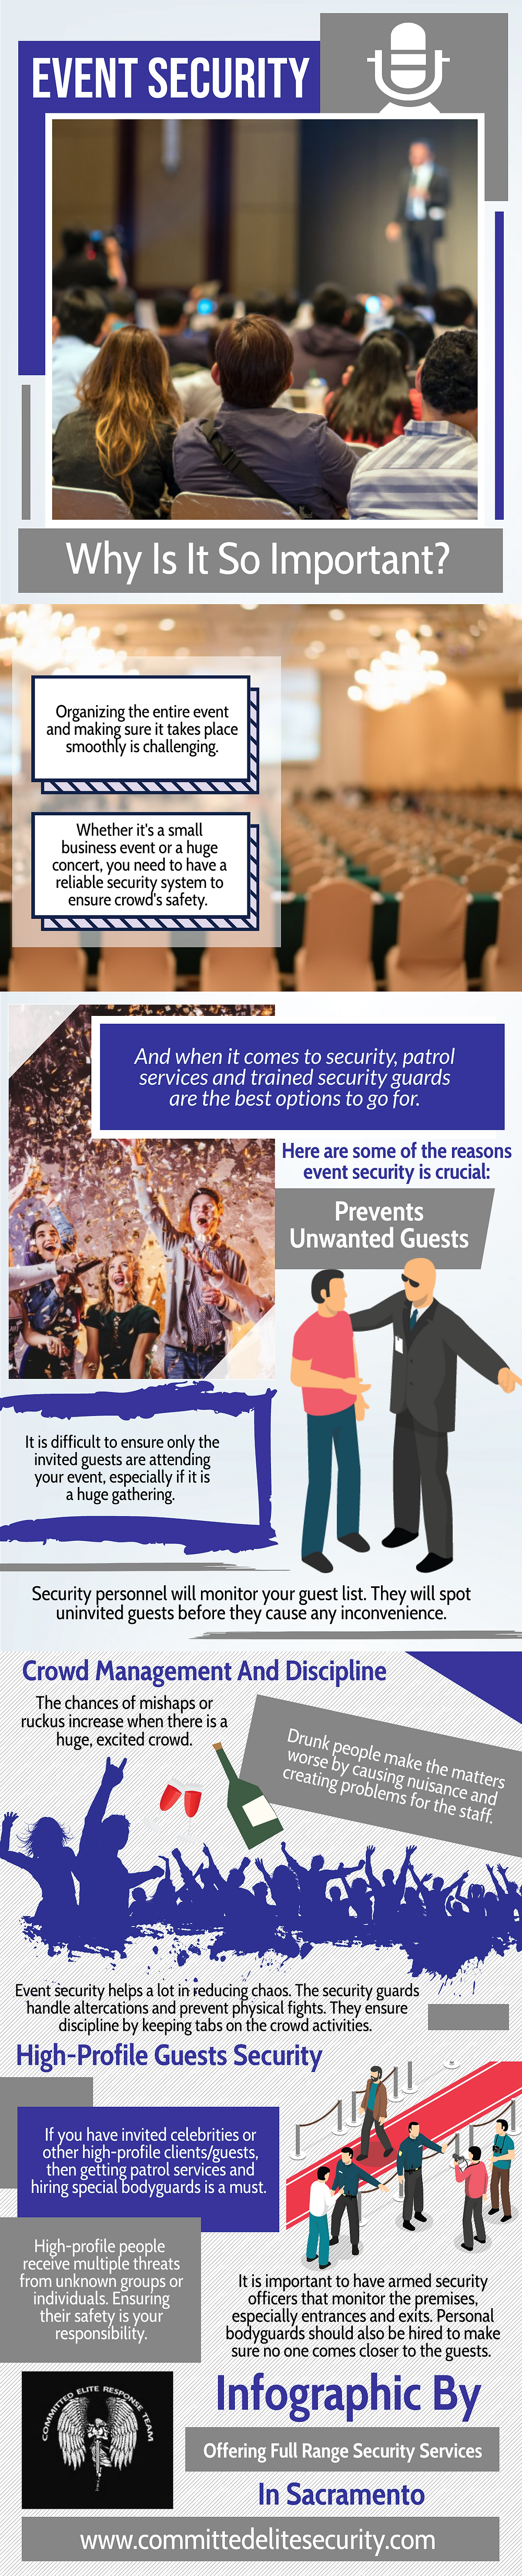 Event Security! Why Is It So Important?